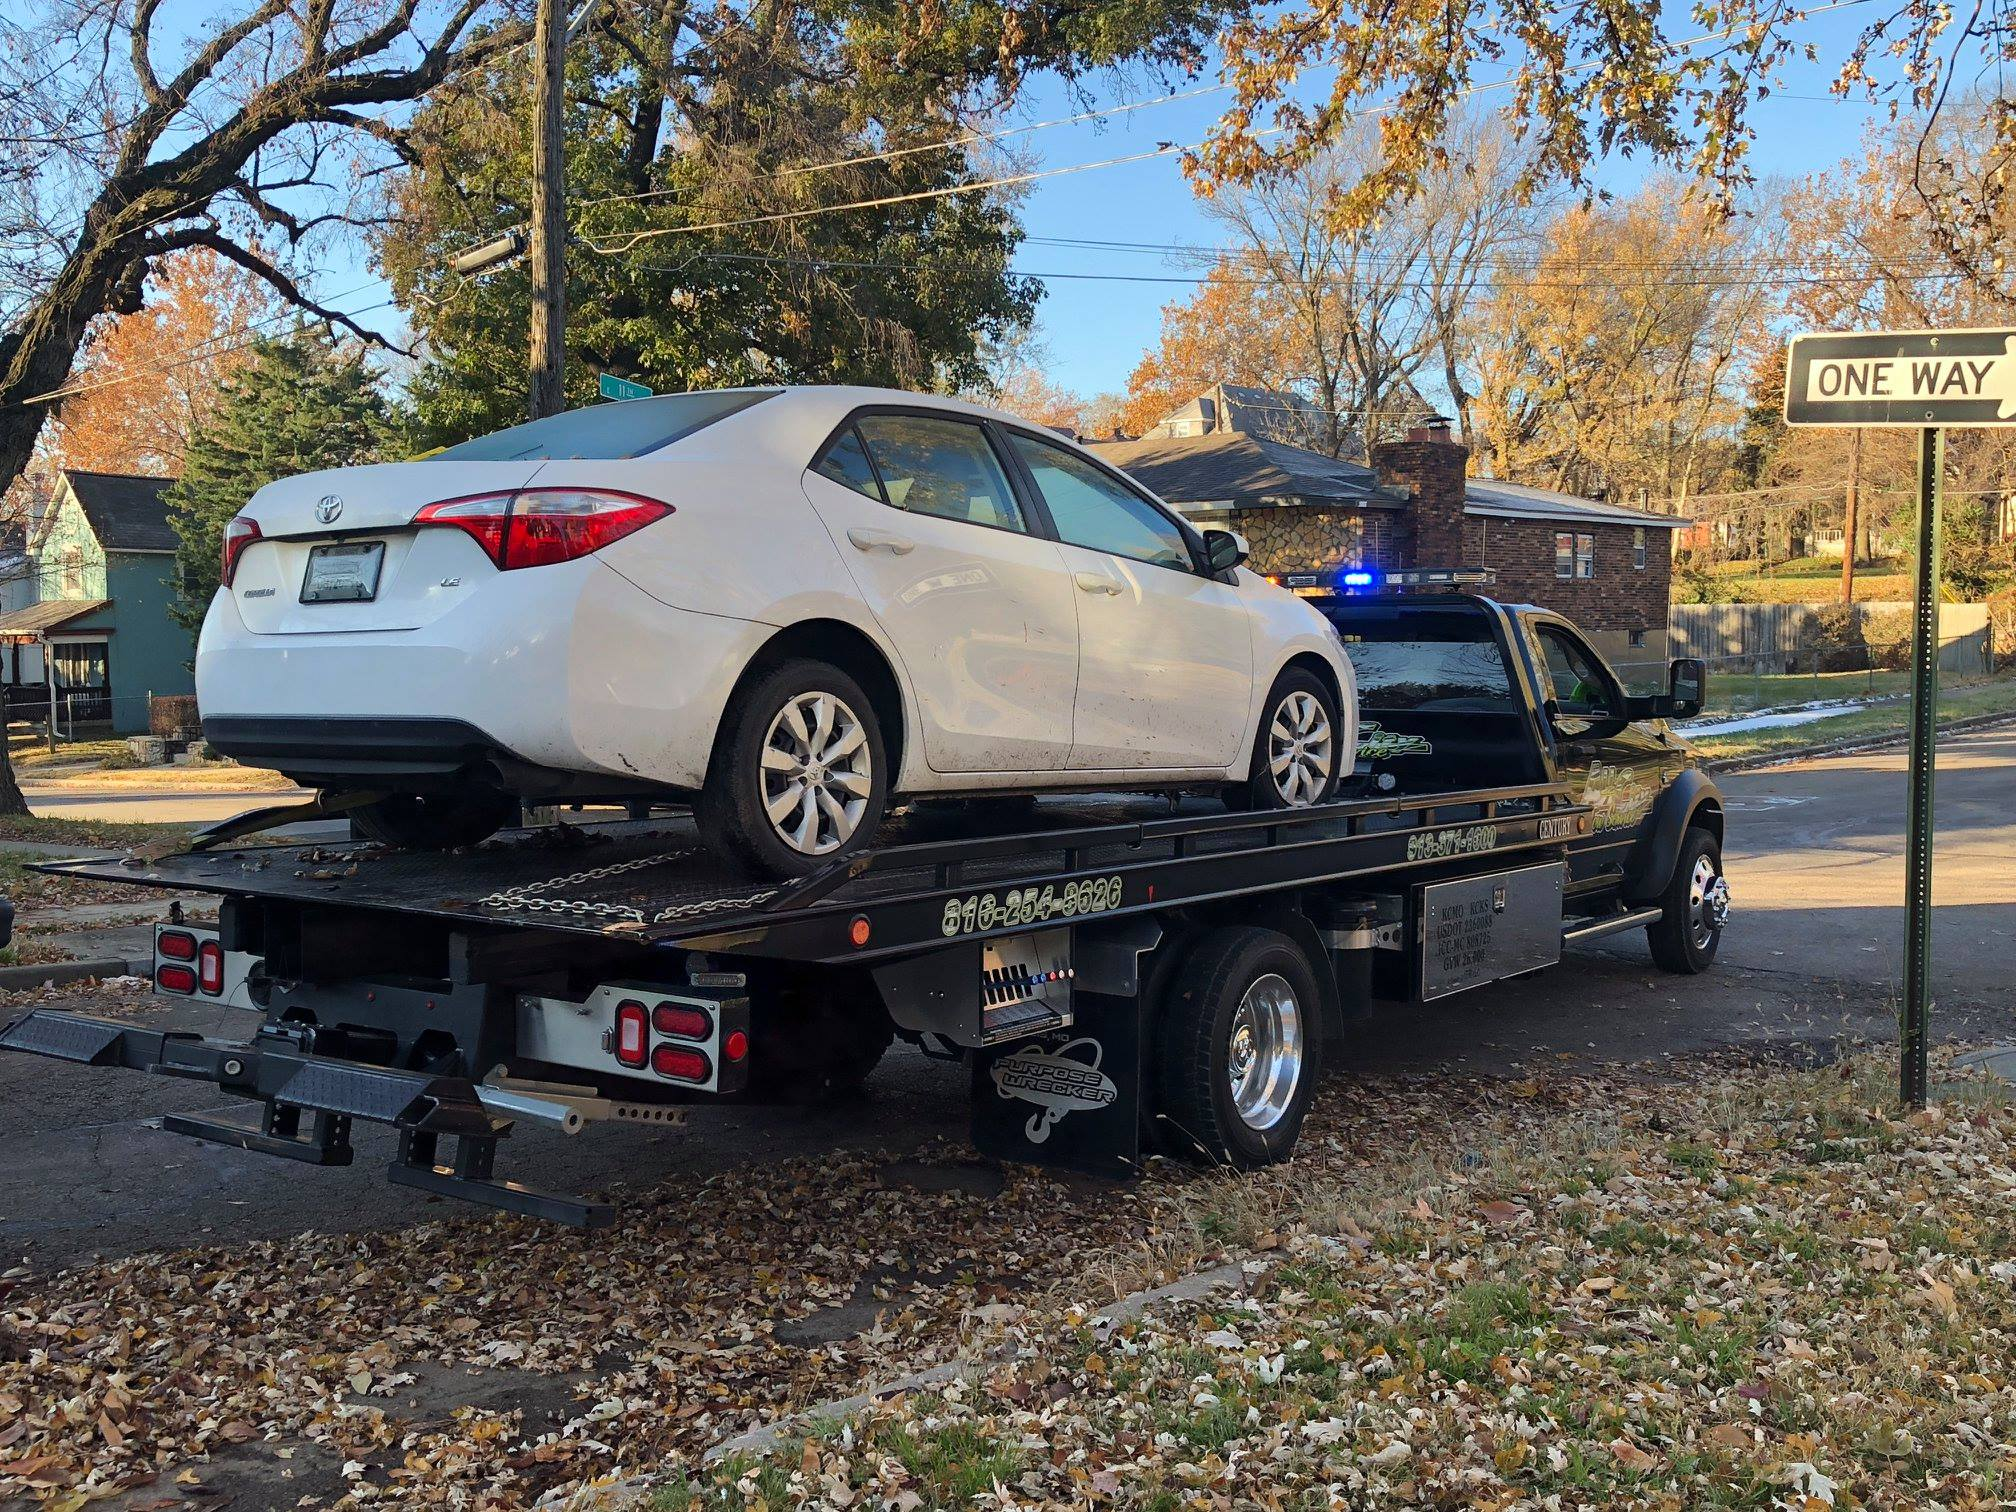 Northeast News Kansas City Police Remove Abandoned Cars Off